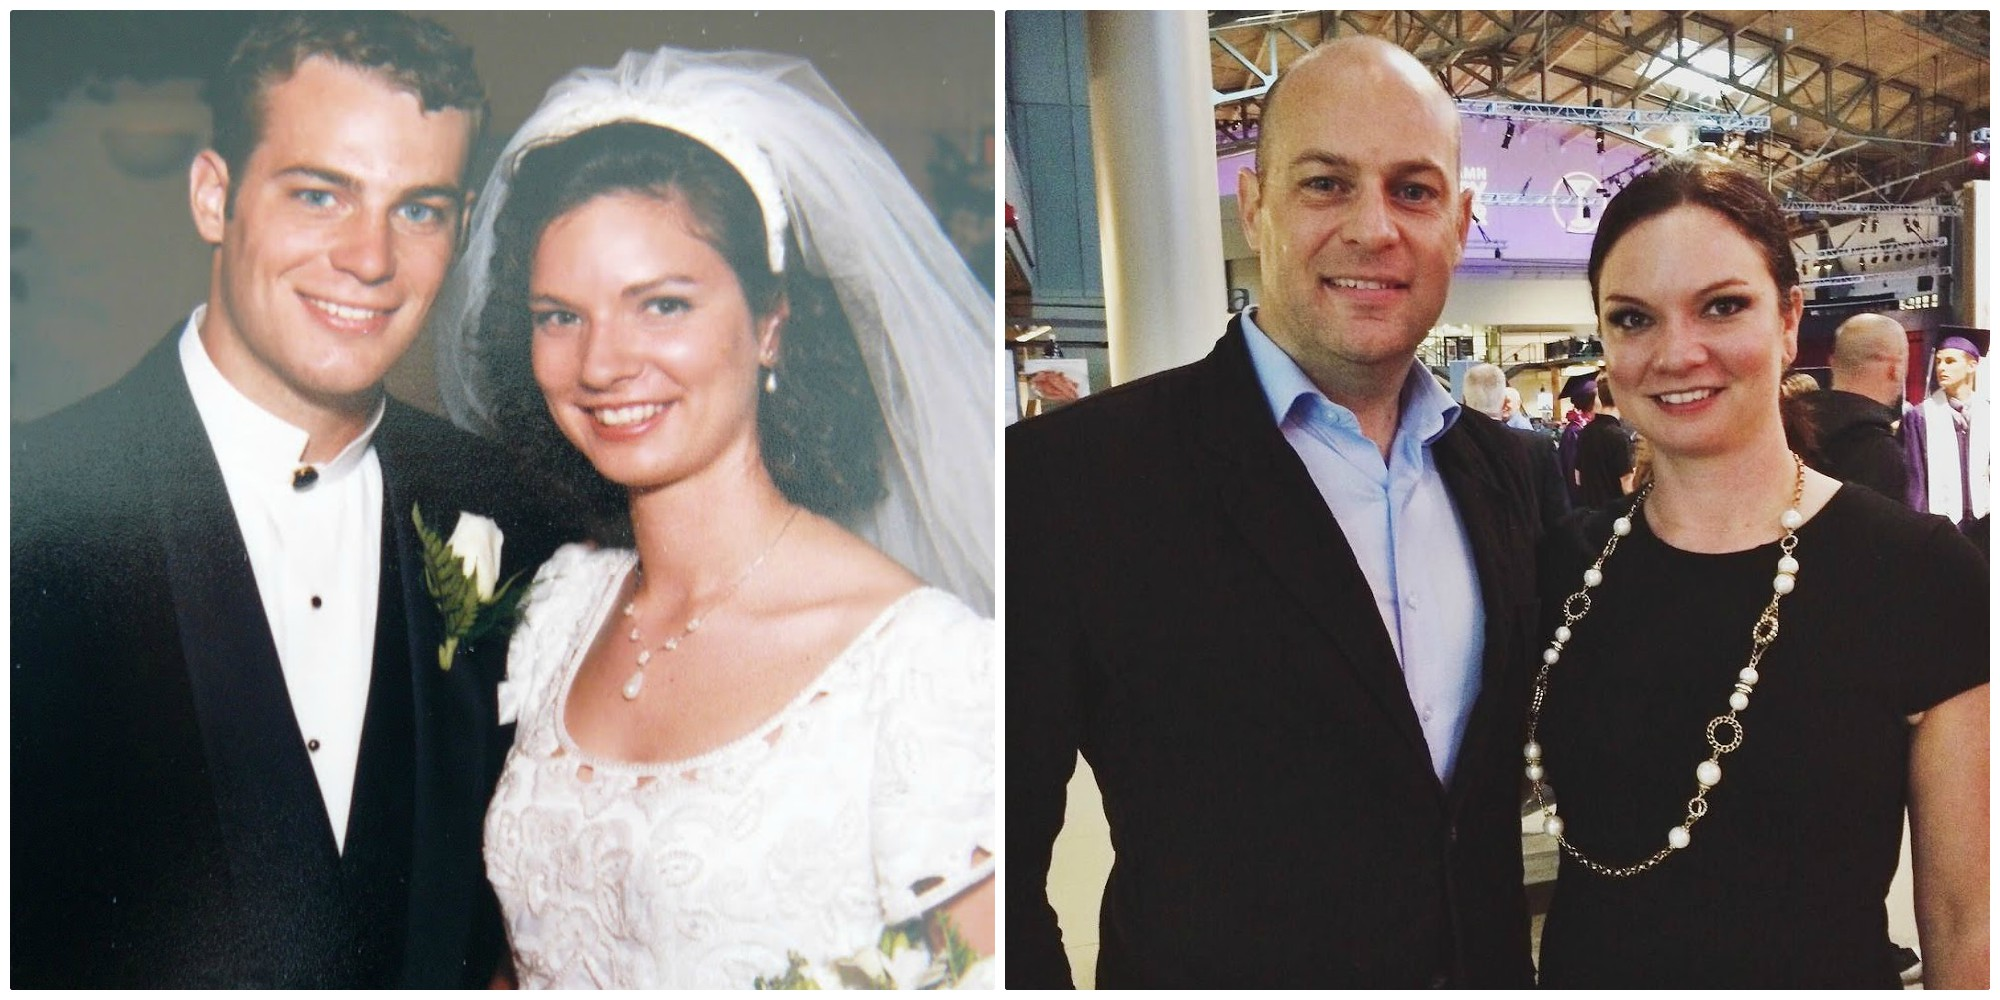 21 years ago and today. I thank God each day for the blessing of this marriage. It's a wonderful thing to be married to your best friend.